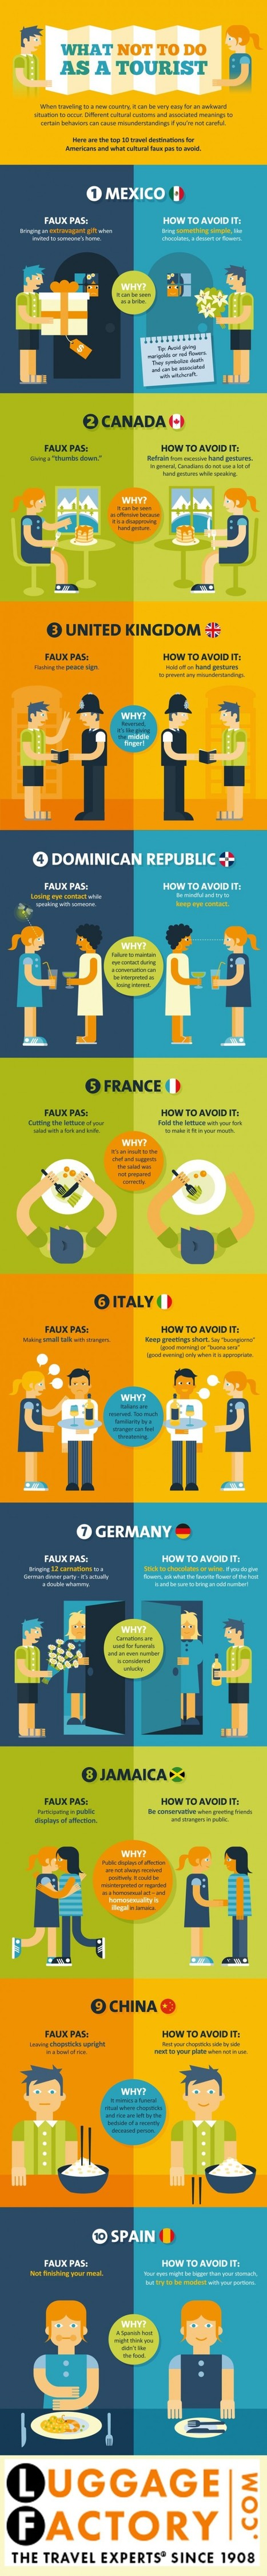 What Not To Do As A Tourist [Infographic] | Transformations in Business & Tourism | Scoop.it